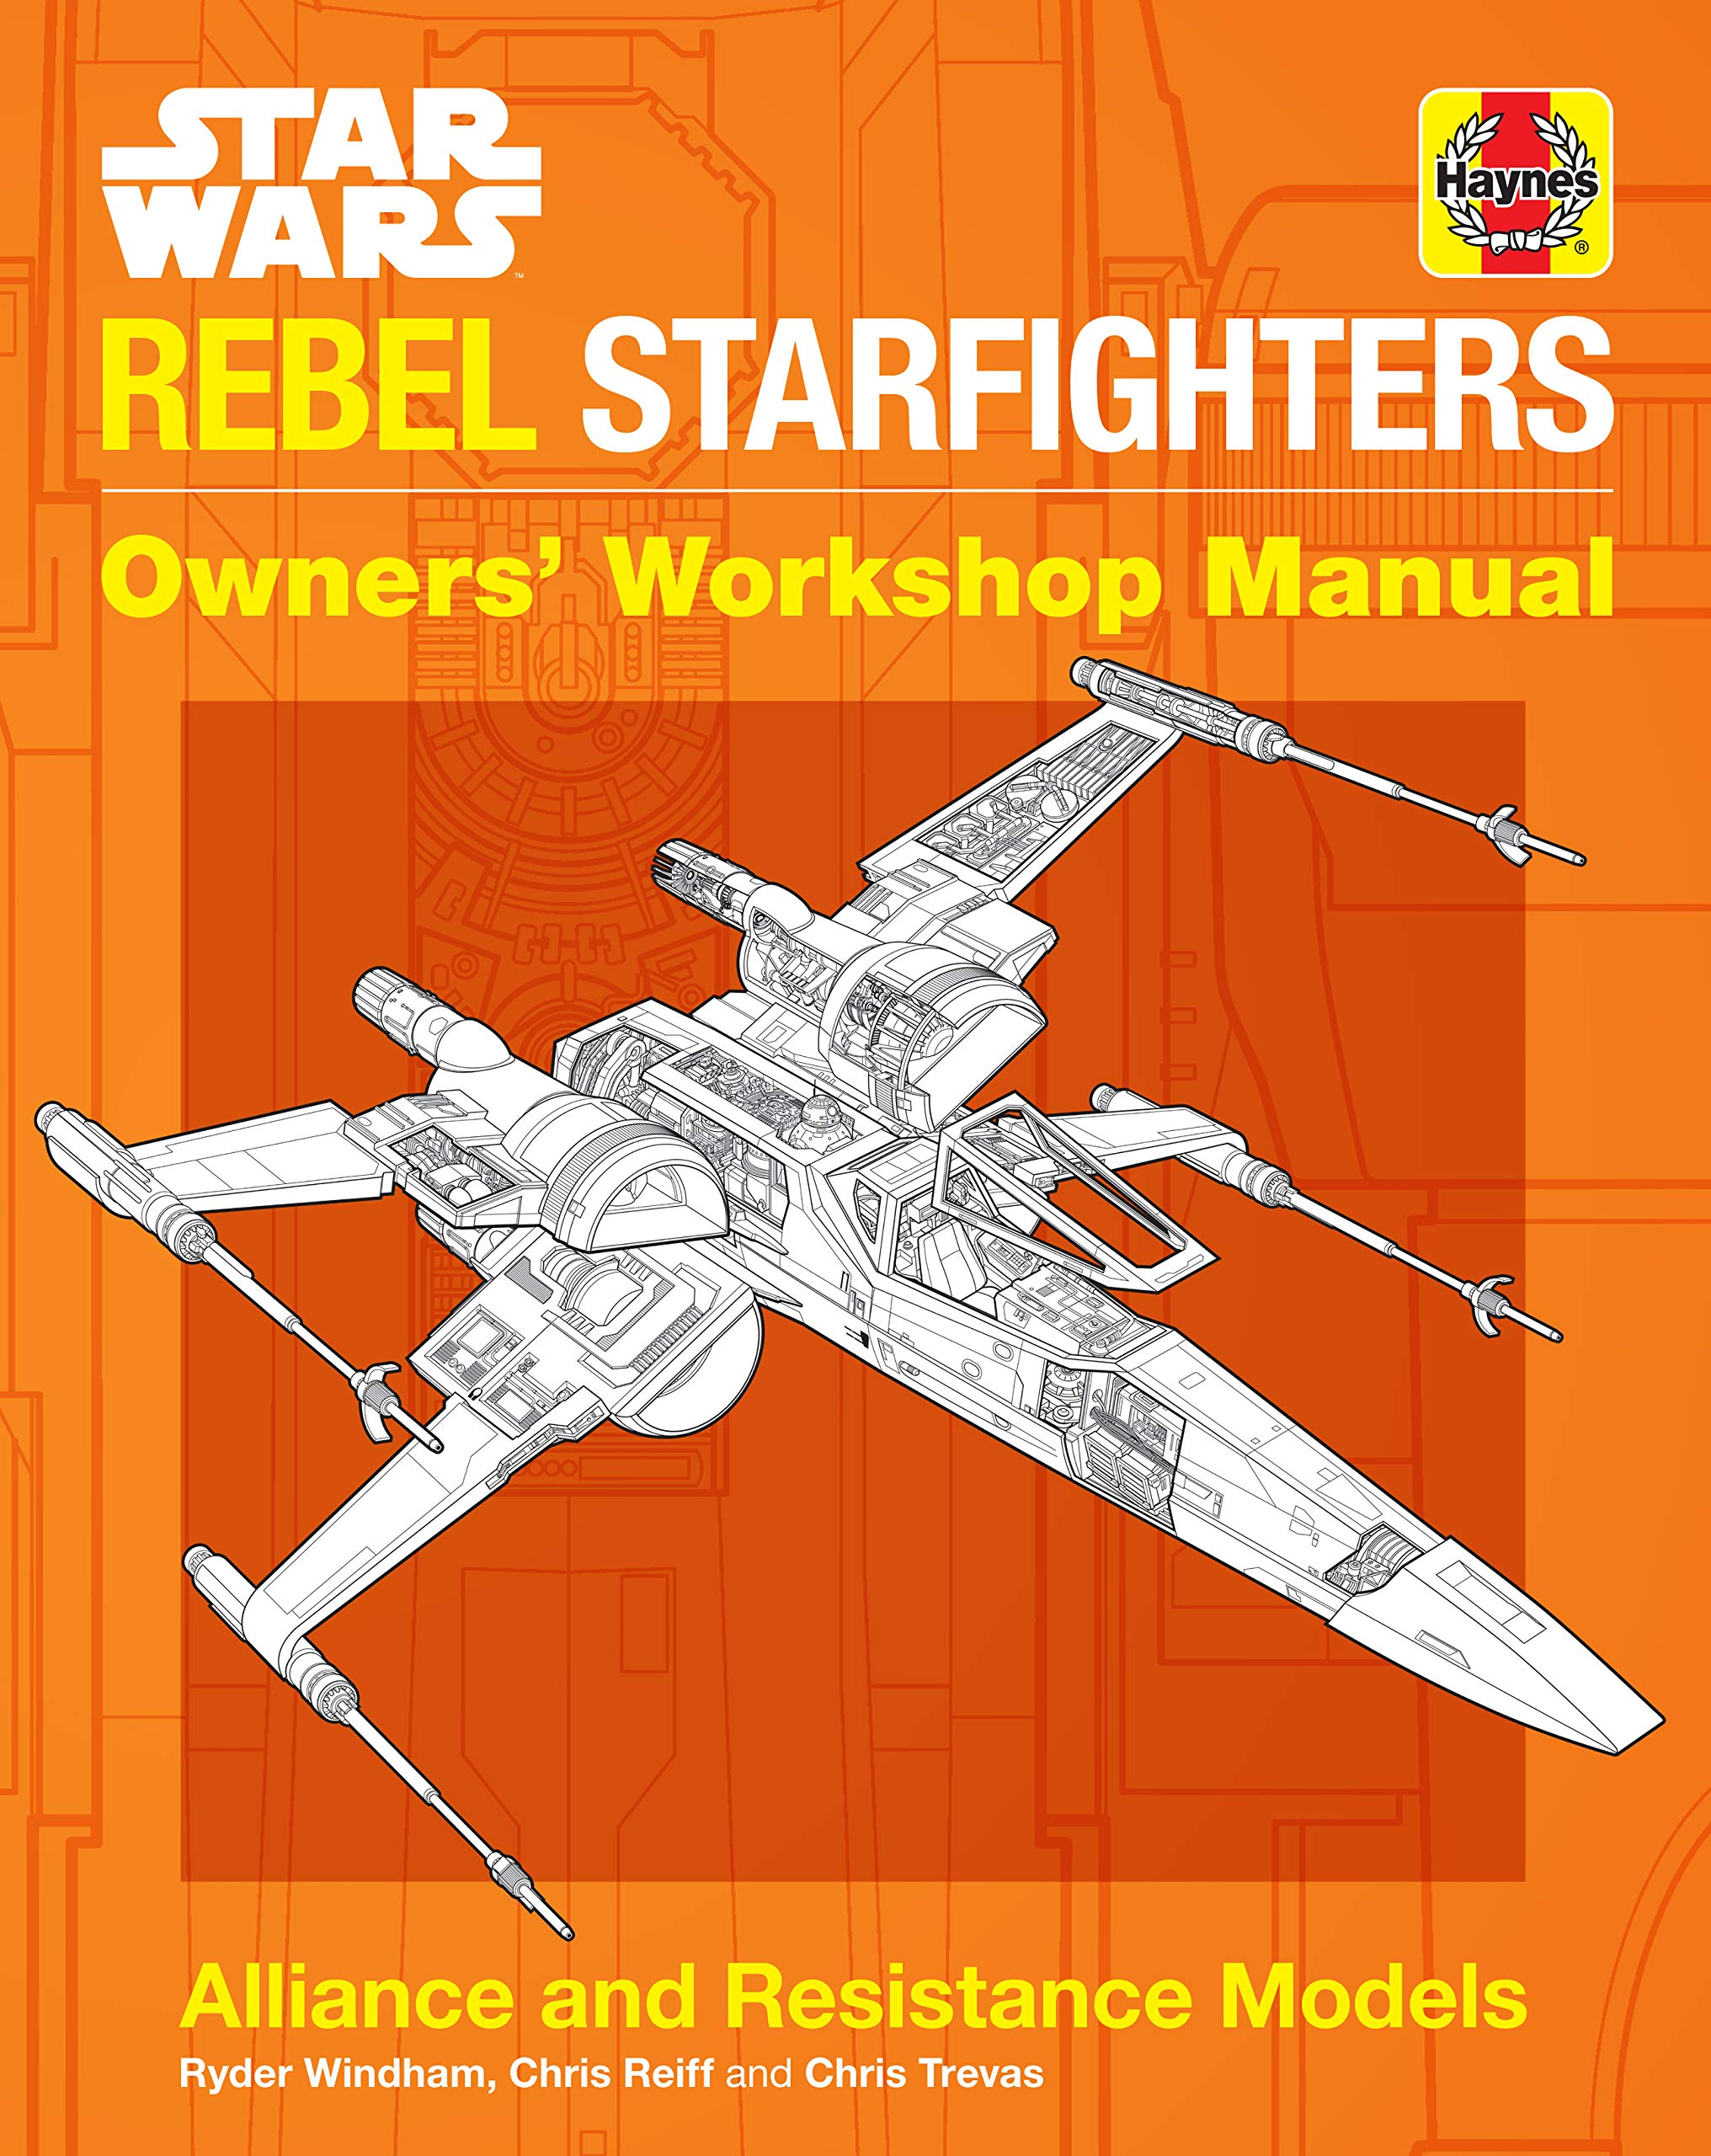 Star Wars Rebel Starfighter